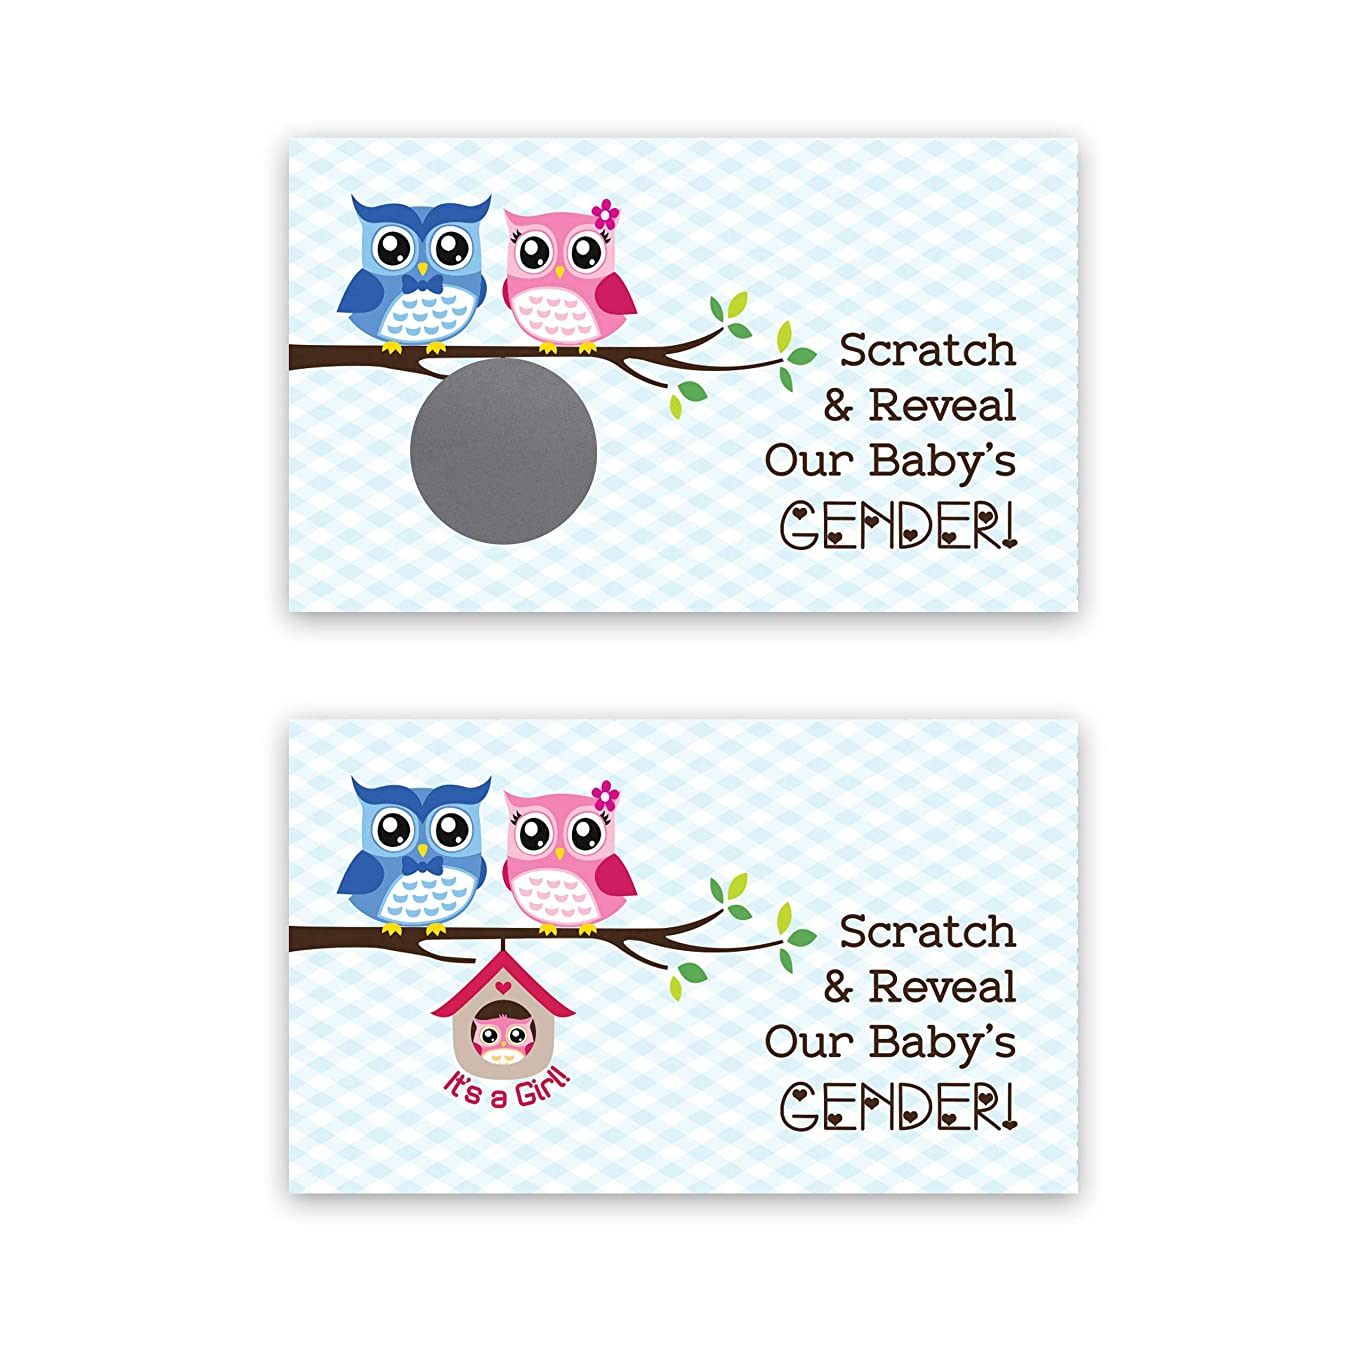 Whimsical Owl - It's a Girl! - Gender Reveal Scratch Off Cards - 25 Pack - My Scratch Offs